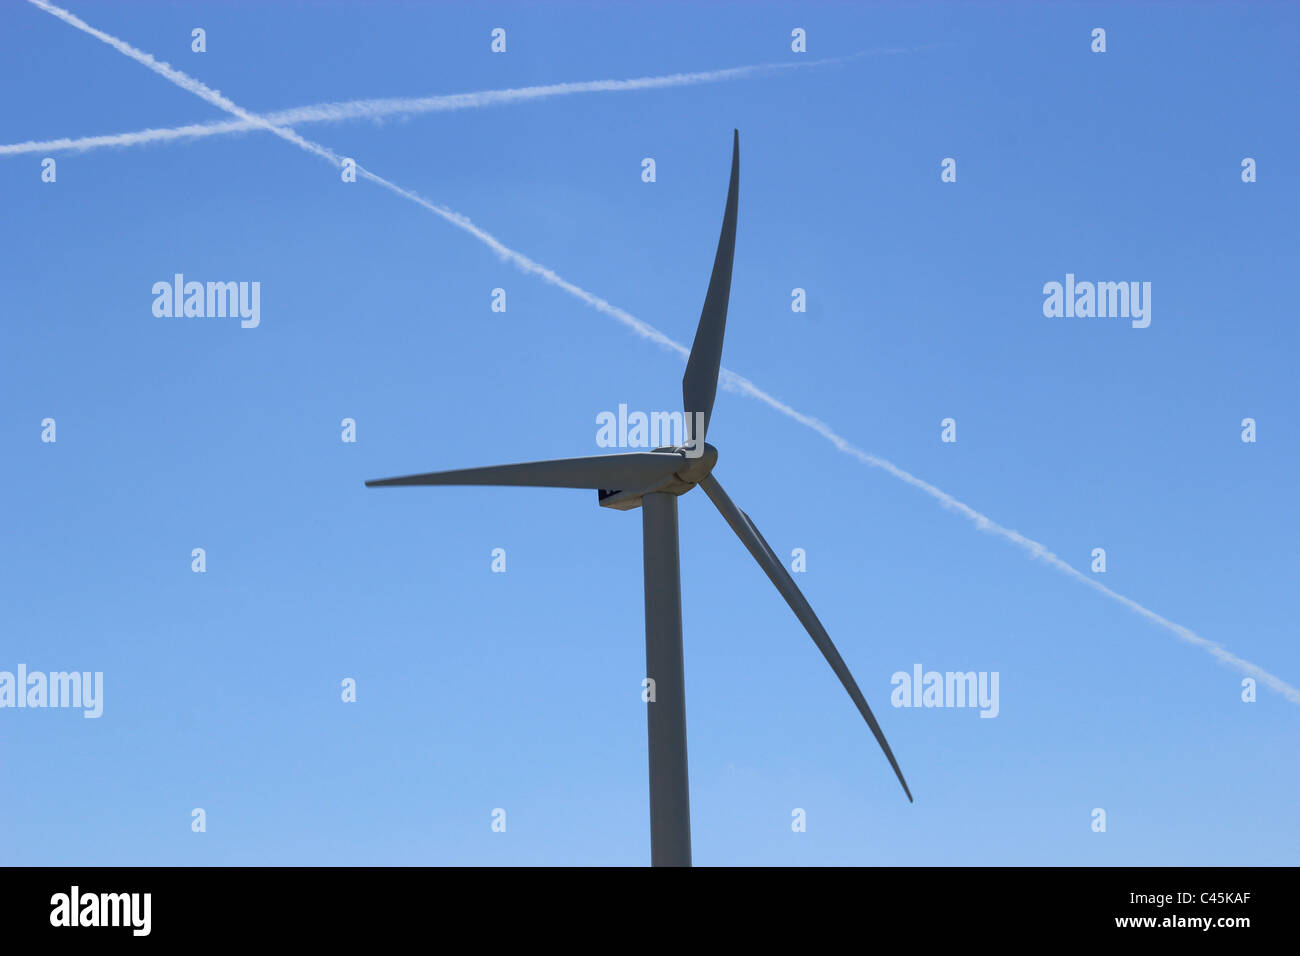 Wind power with airplane wakes in the blue sky - Stock Image